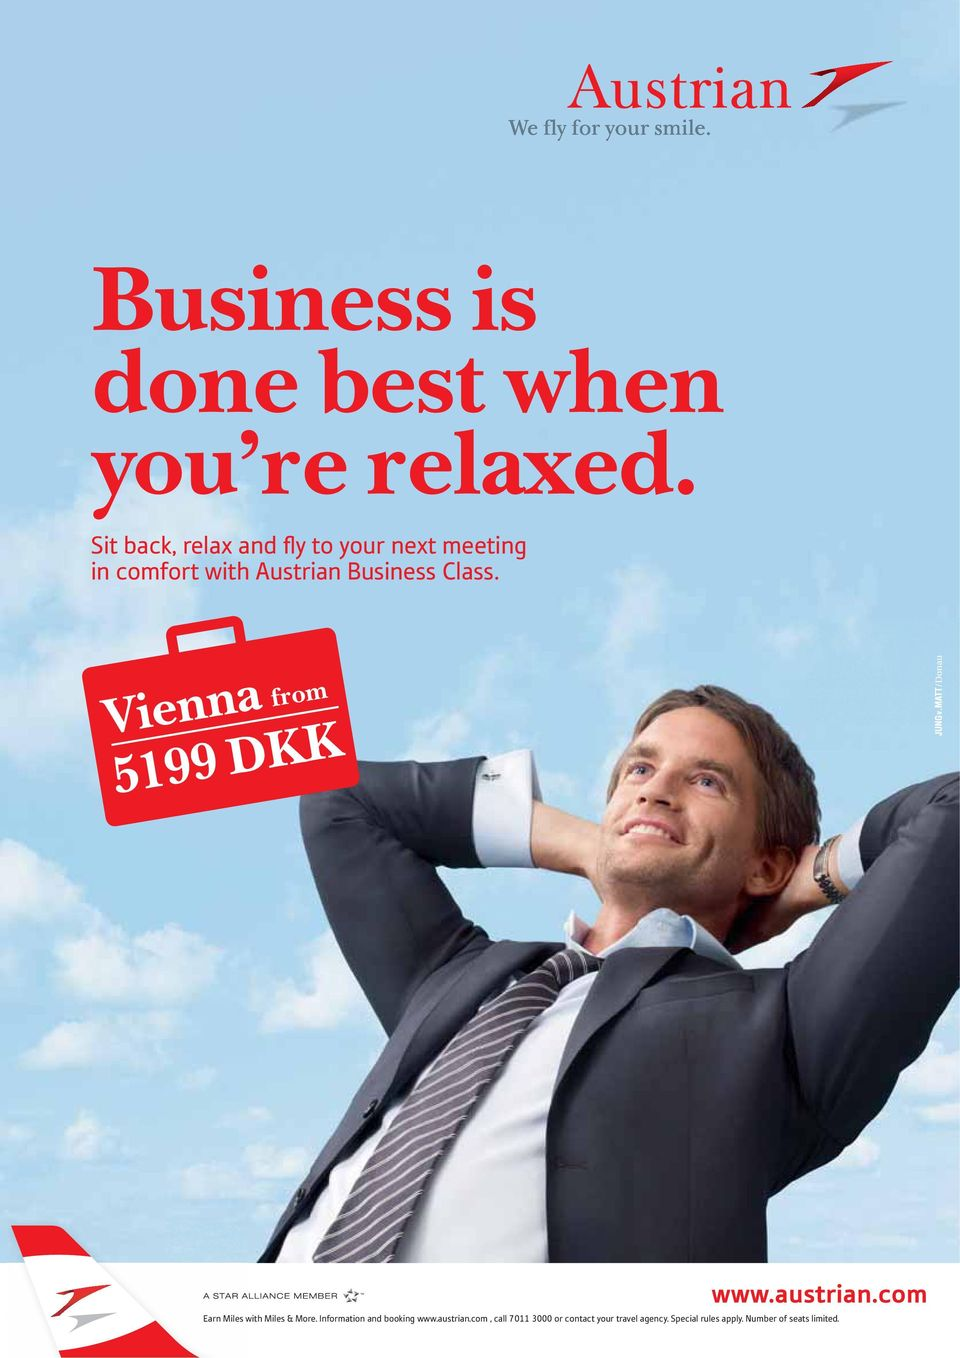 Class. Vienna from 5199 DKK Earn Miles with Miles & More.